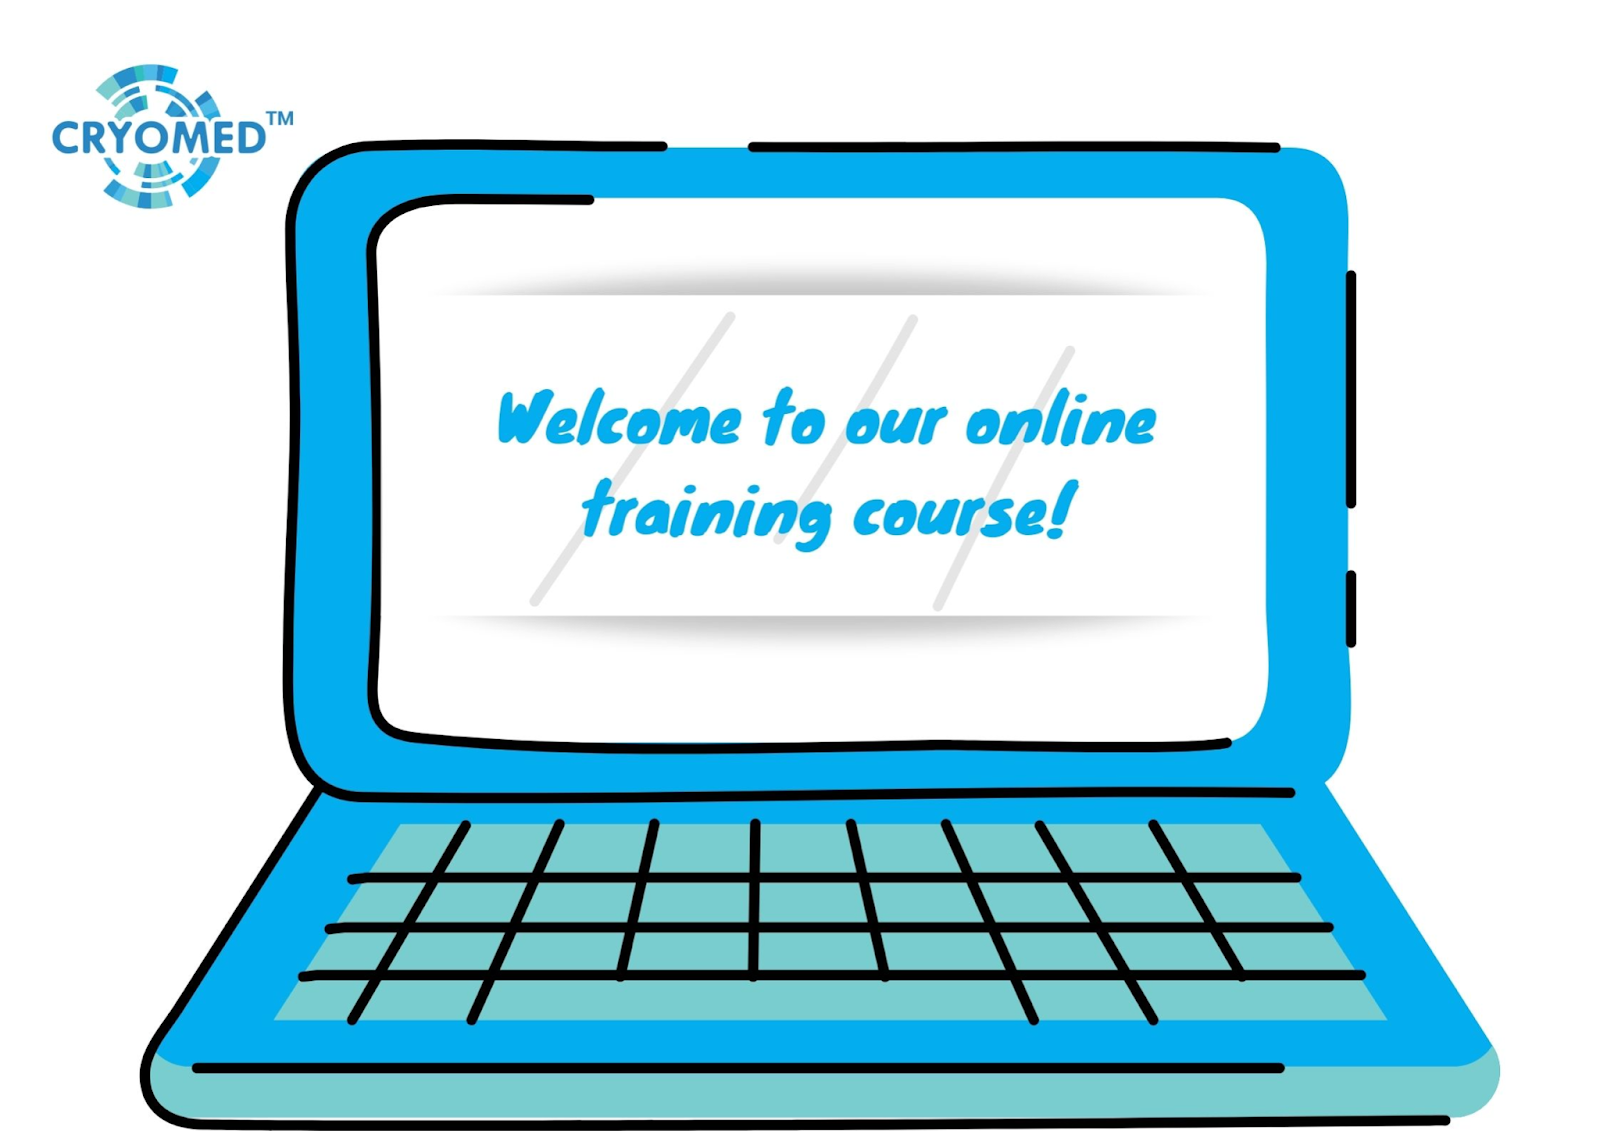 A free online training course for Cryomed customers